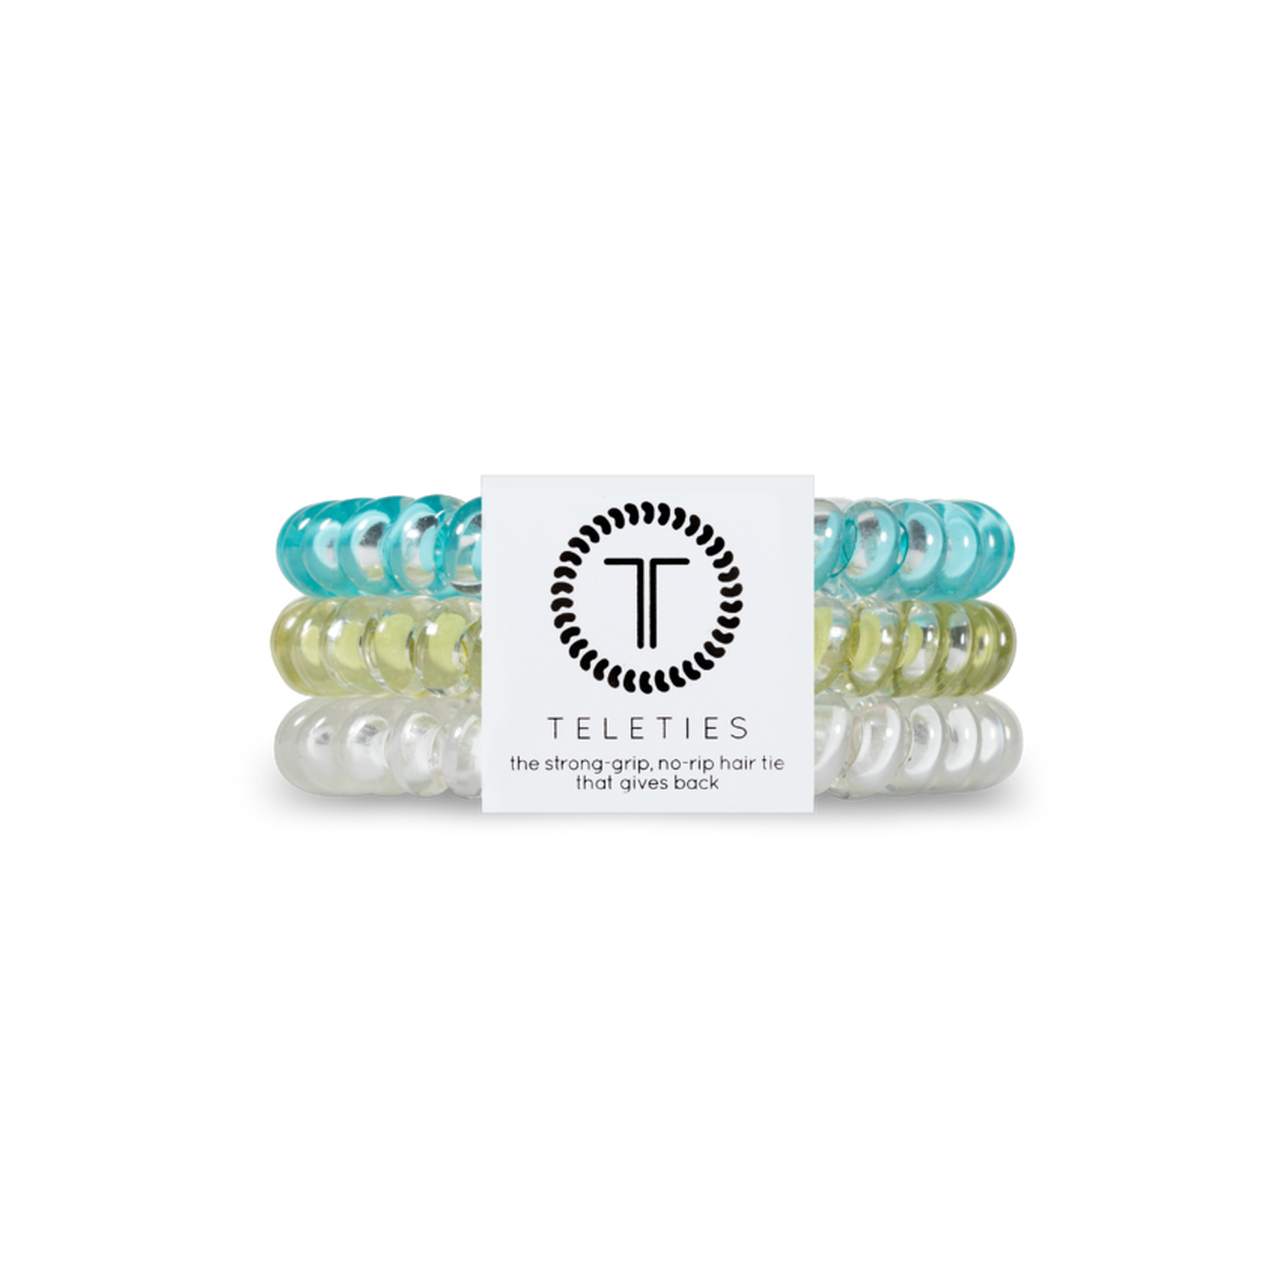 Teleties teal green and clear set